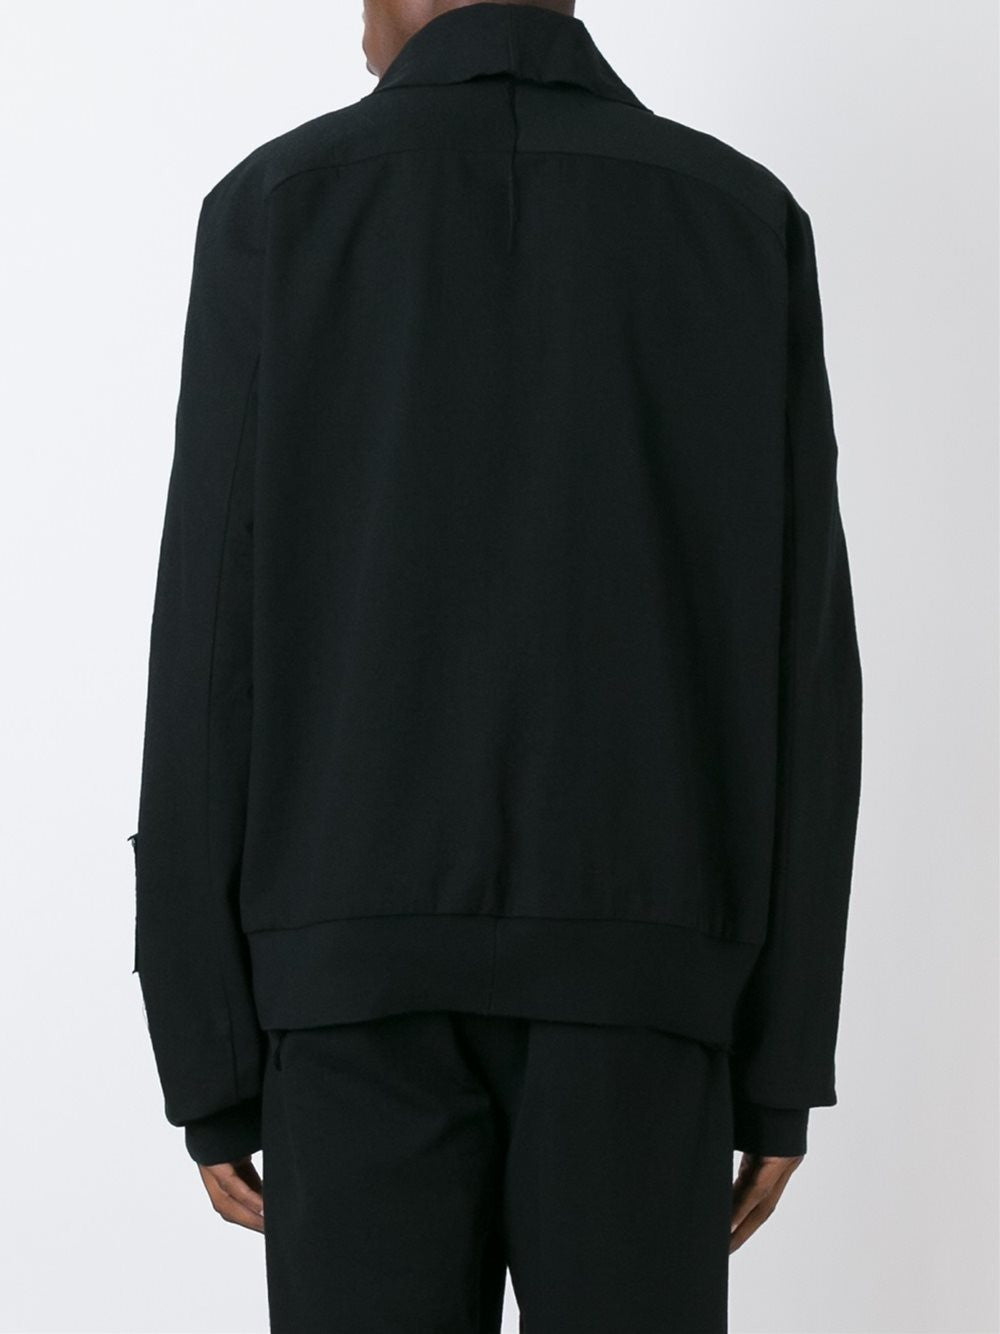 Leather Panel Johnson Sweatshirt | AF1M0007-L2000 JOHNSON